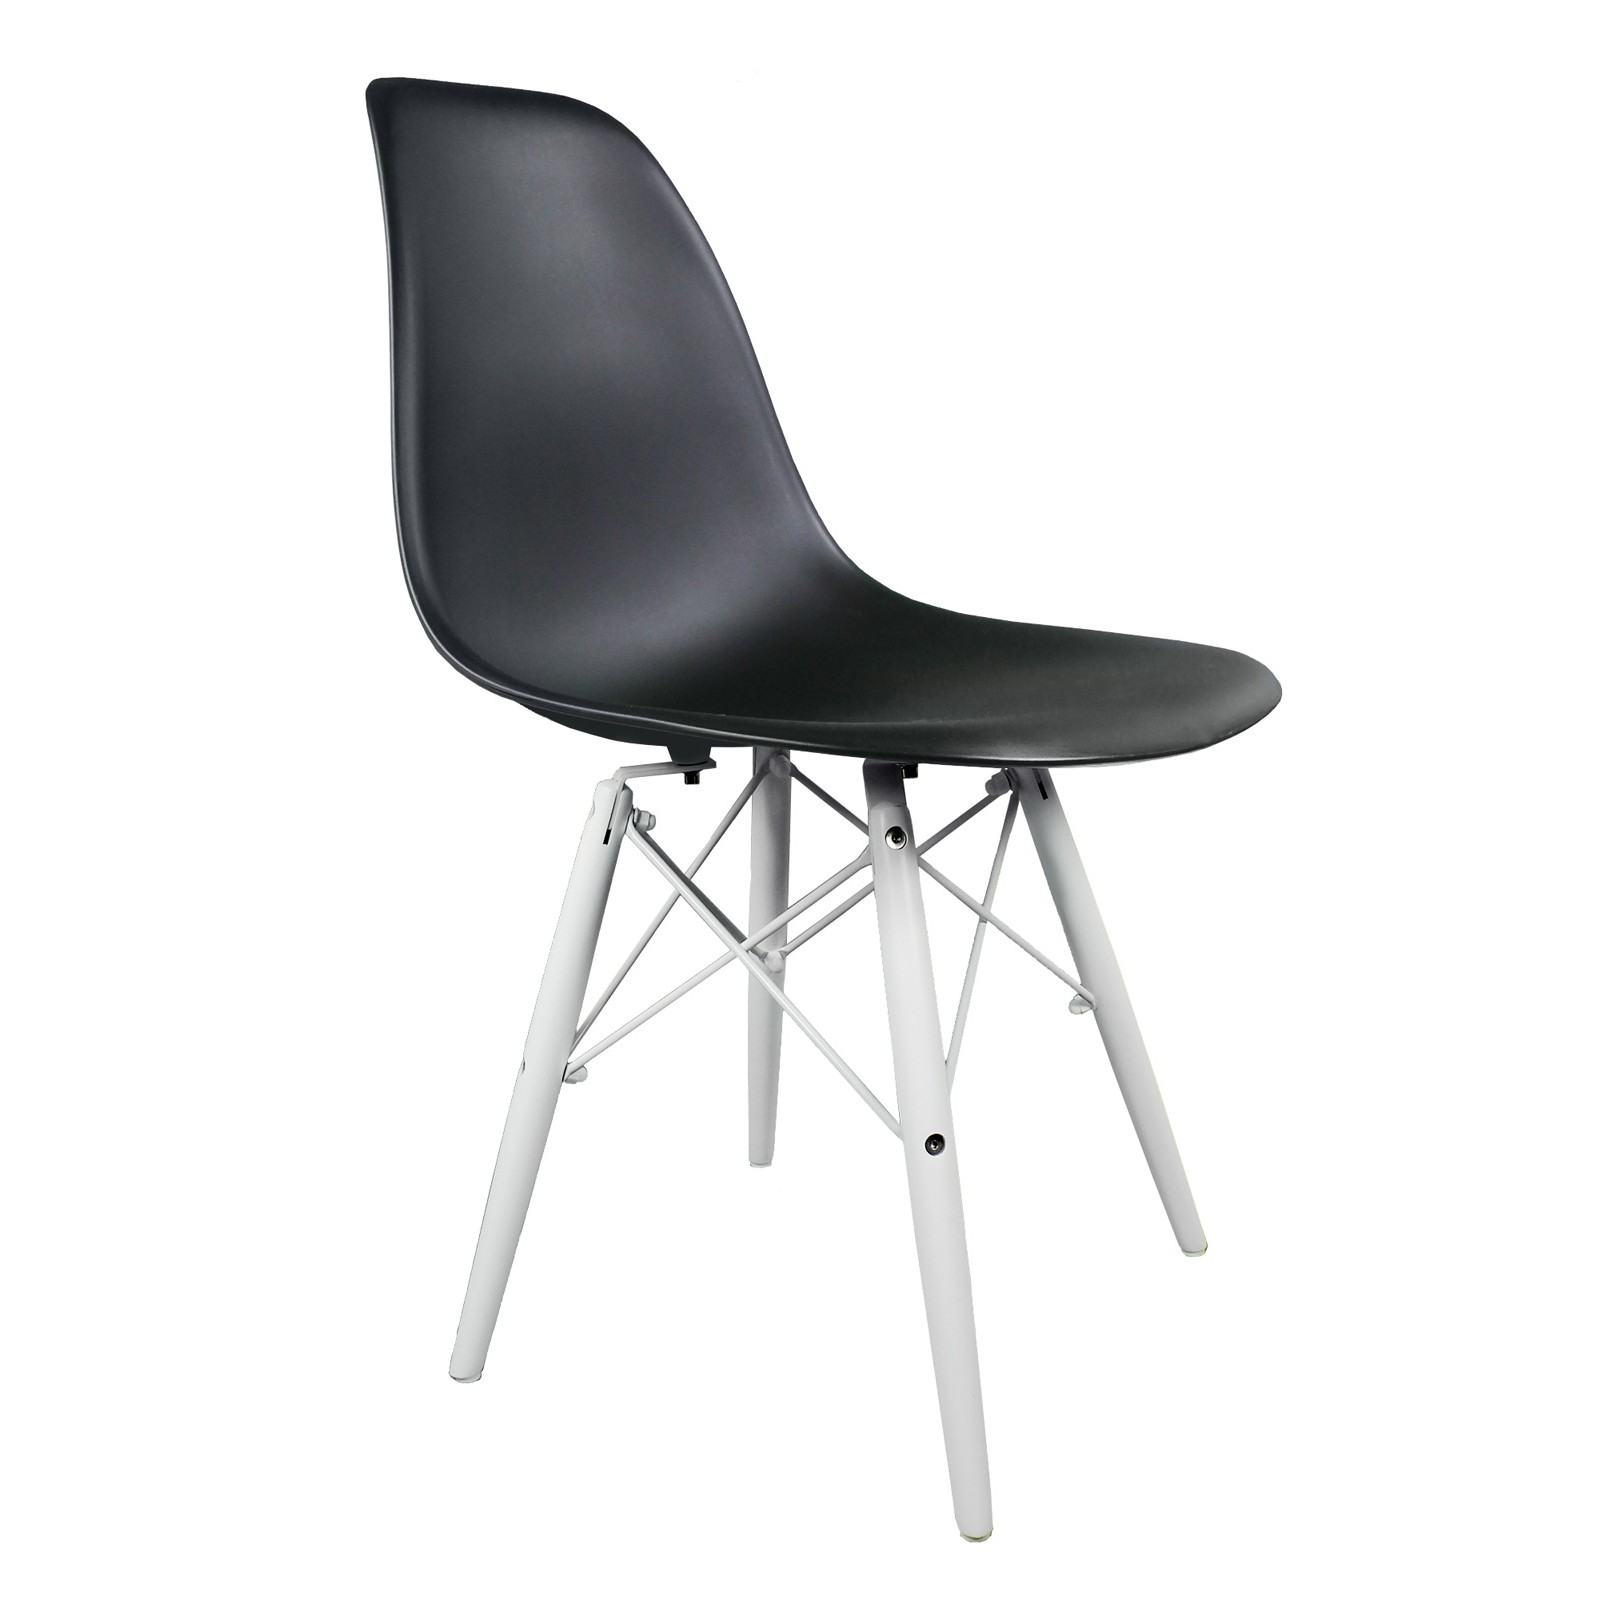 Eames chair white plastic - Black Dsw Molded Plastic Dining Shell Chair With White Wood Eiffel Legs